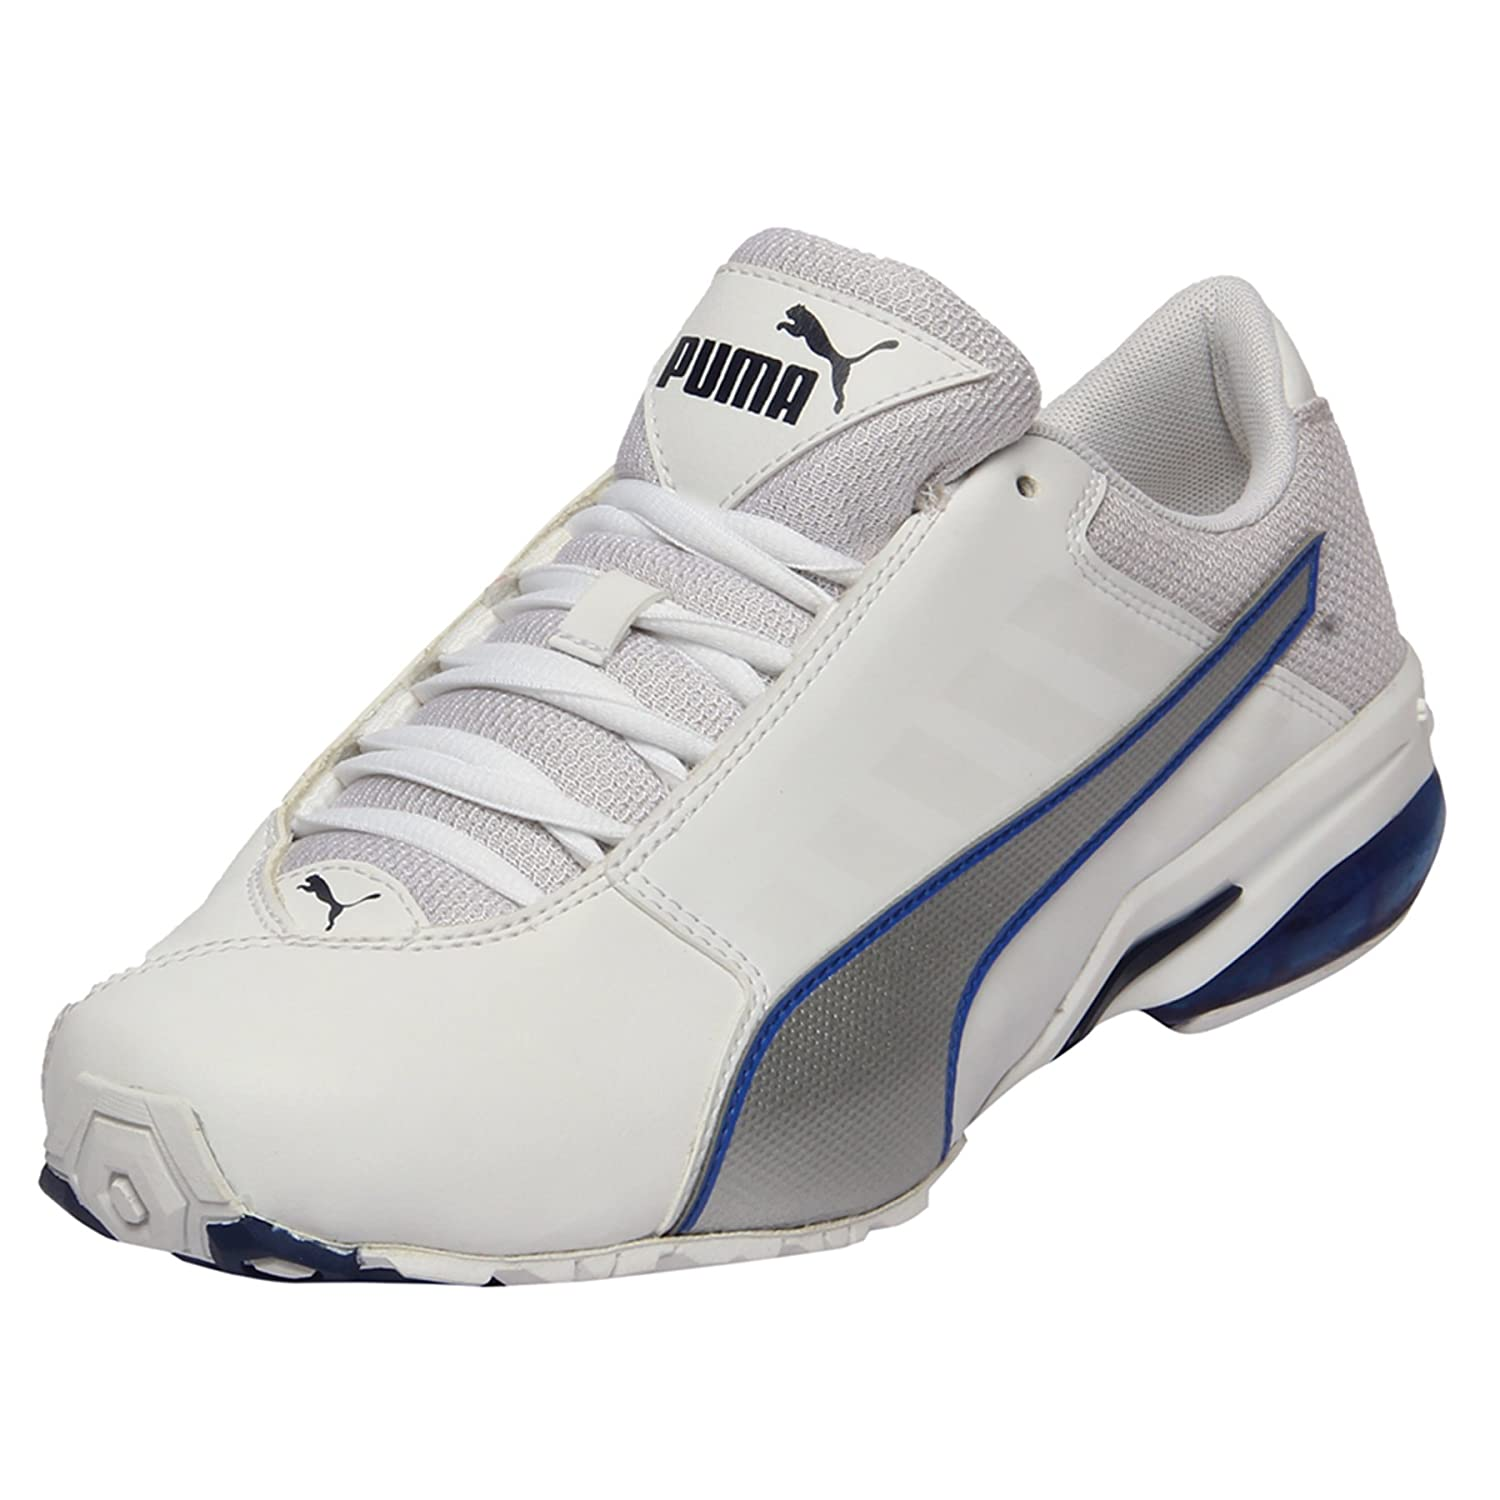 0588c38f30a306 Puma Men s Jago Ripstop II DP Running Shoes  Buy Online at Low ...